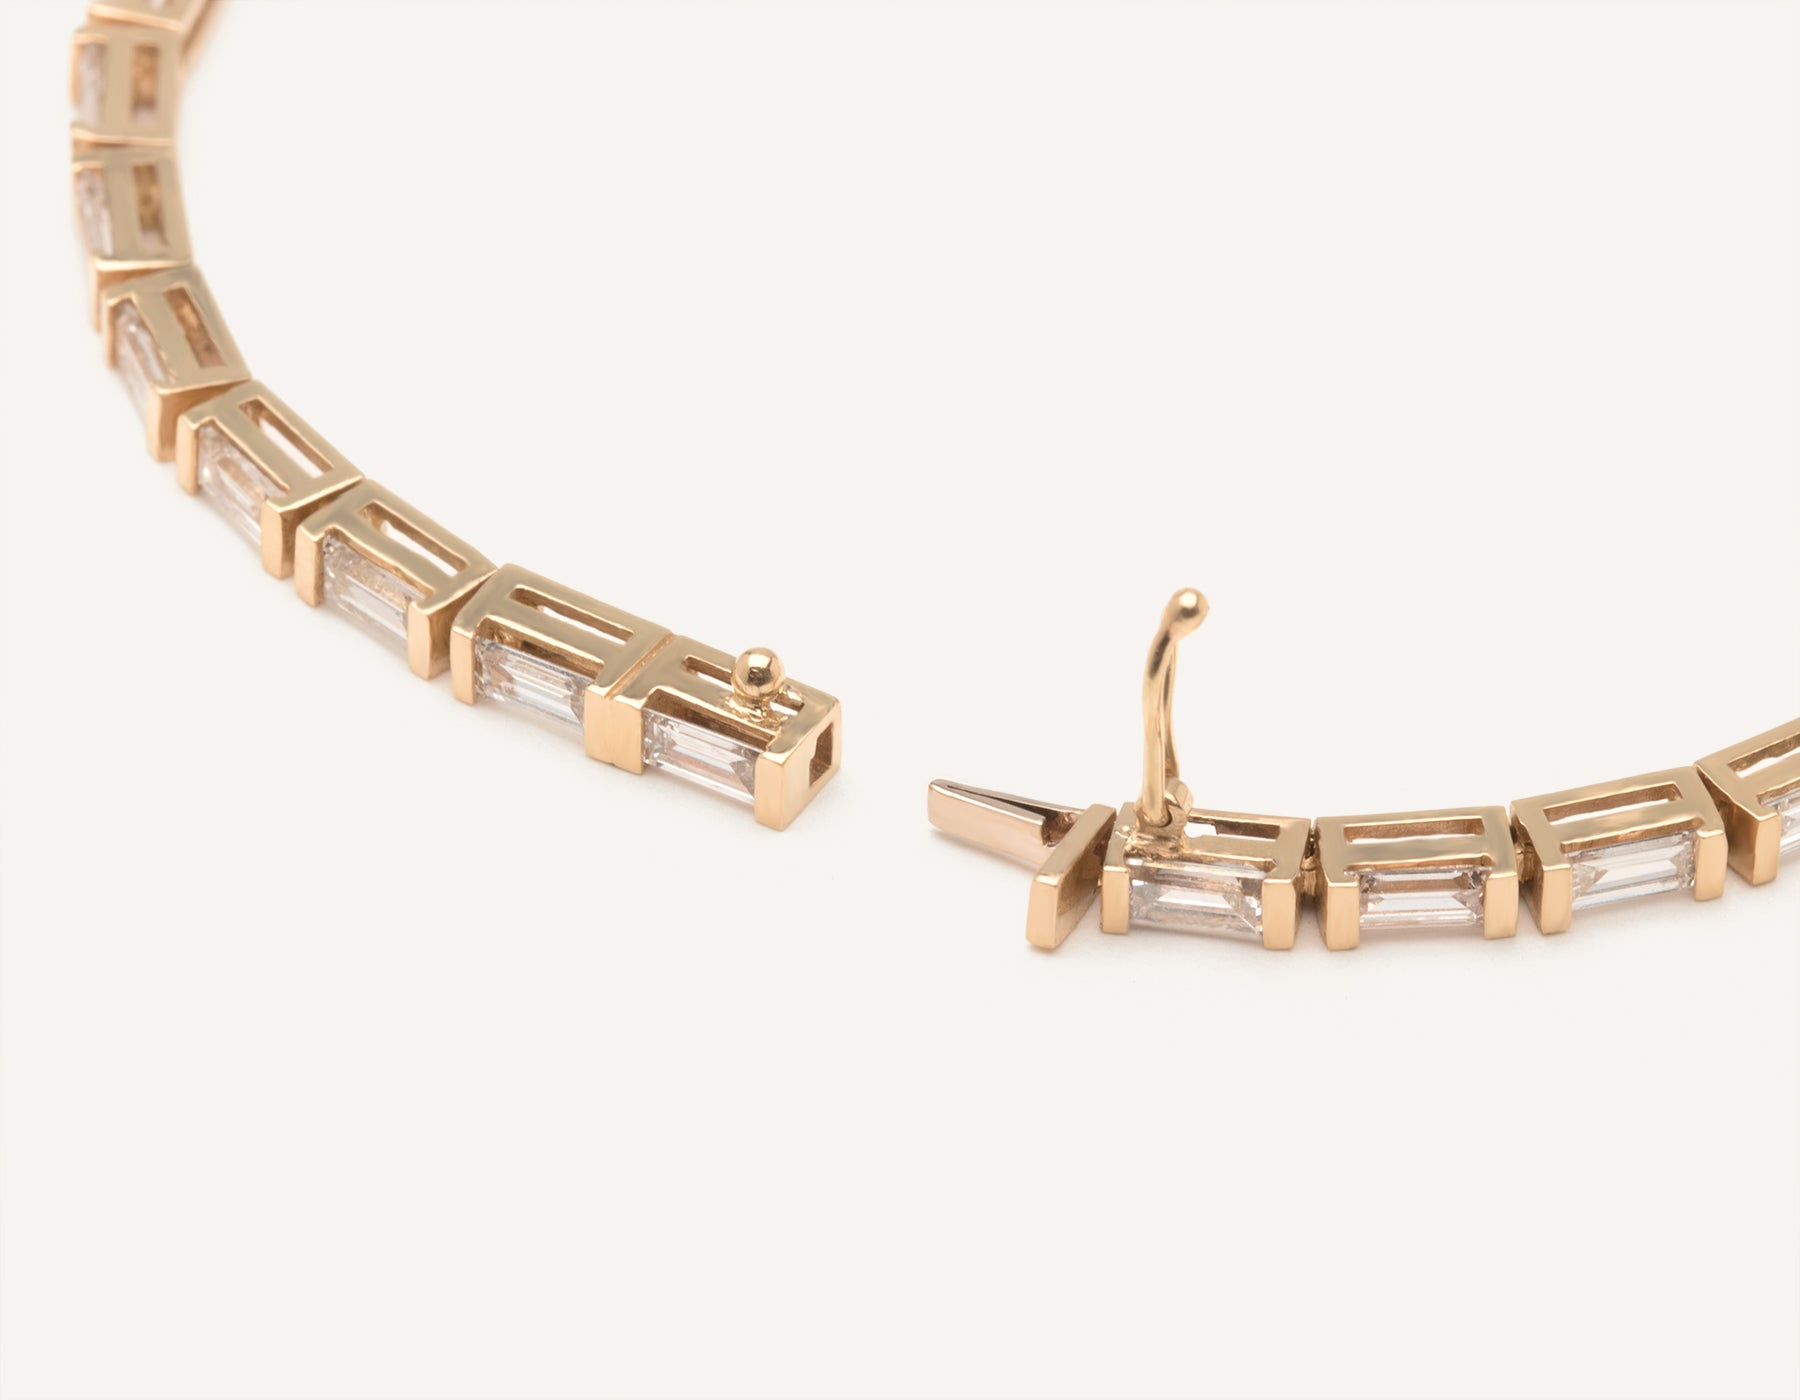 Sleek modern 18k solid gold Baguette Diamond Tennis Bracelet secure clasp handcrafted by Vrai & Oro, 18K Rose Gold